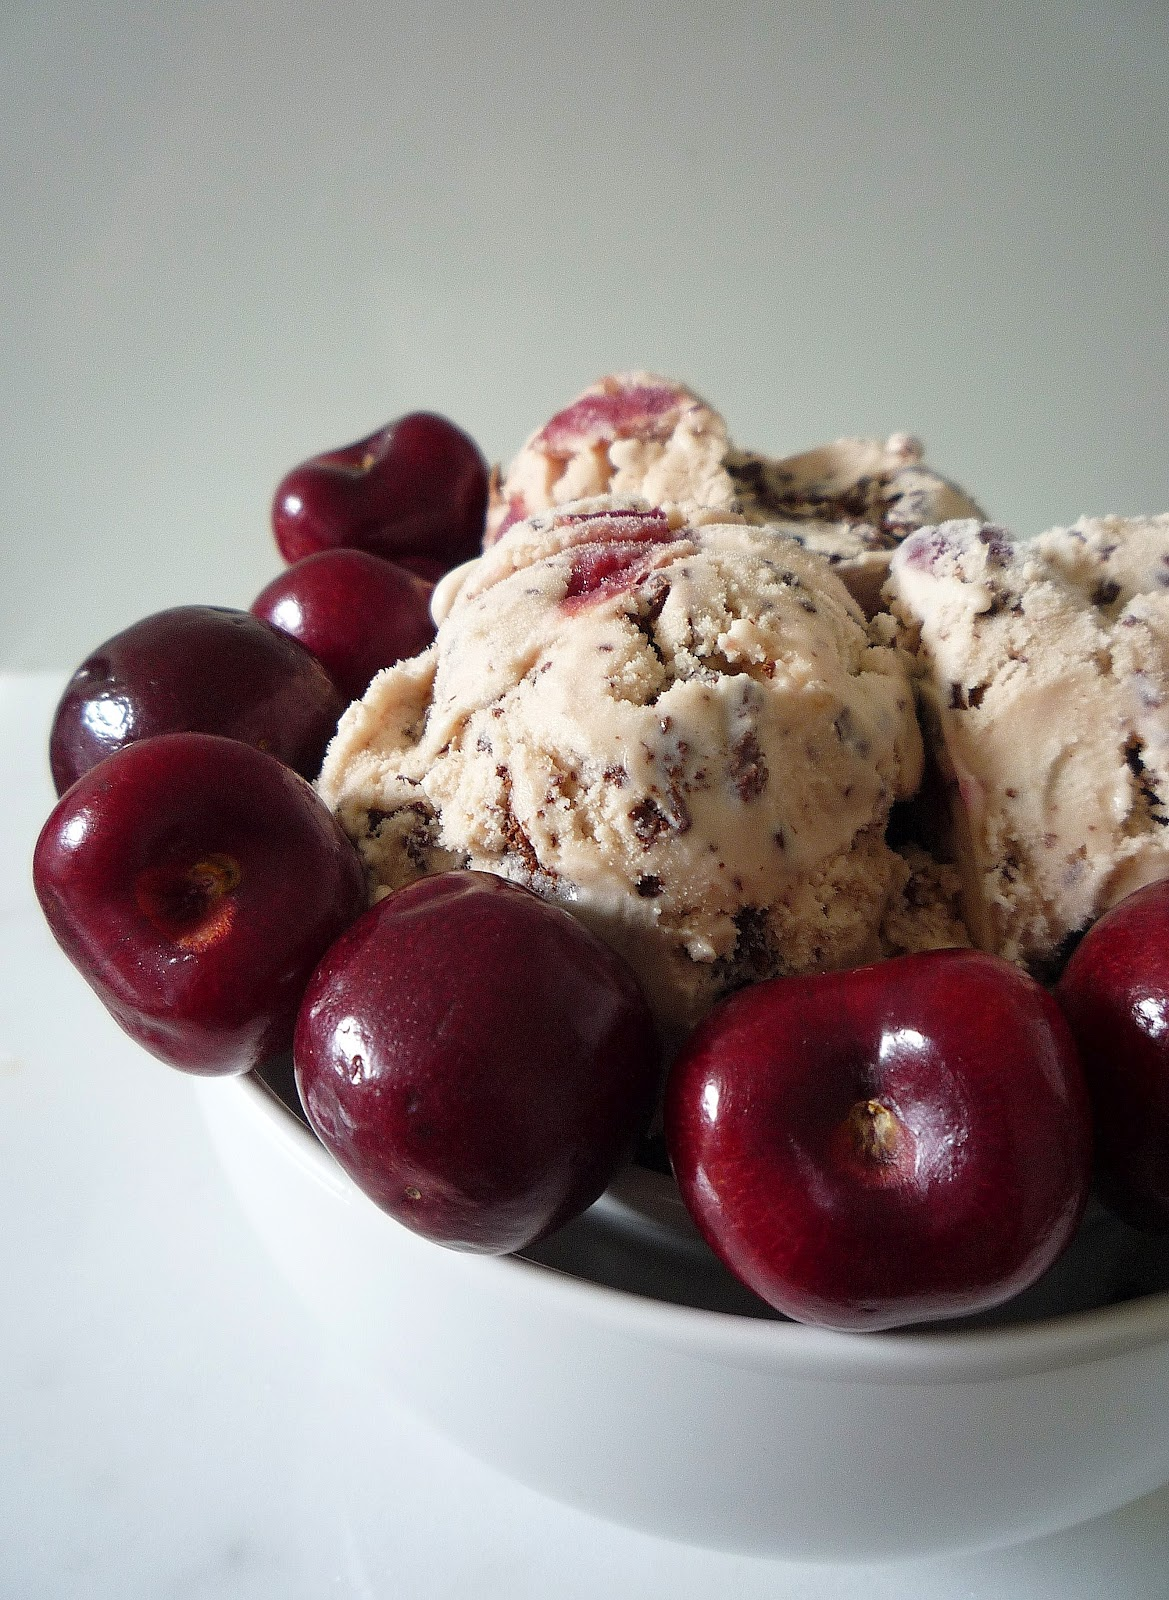 Cherry And Chocolate Stracciatella Ice Cream Recipes — Dishmaps